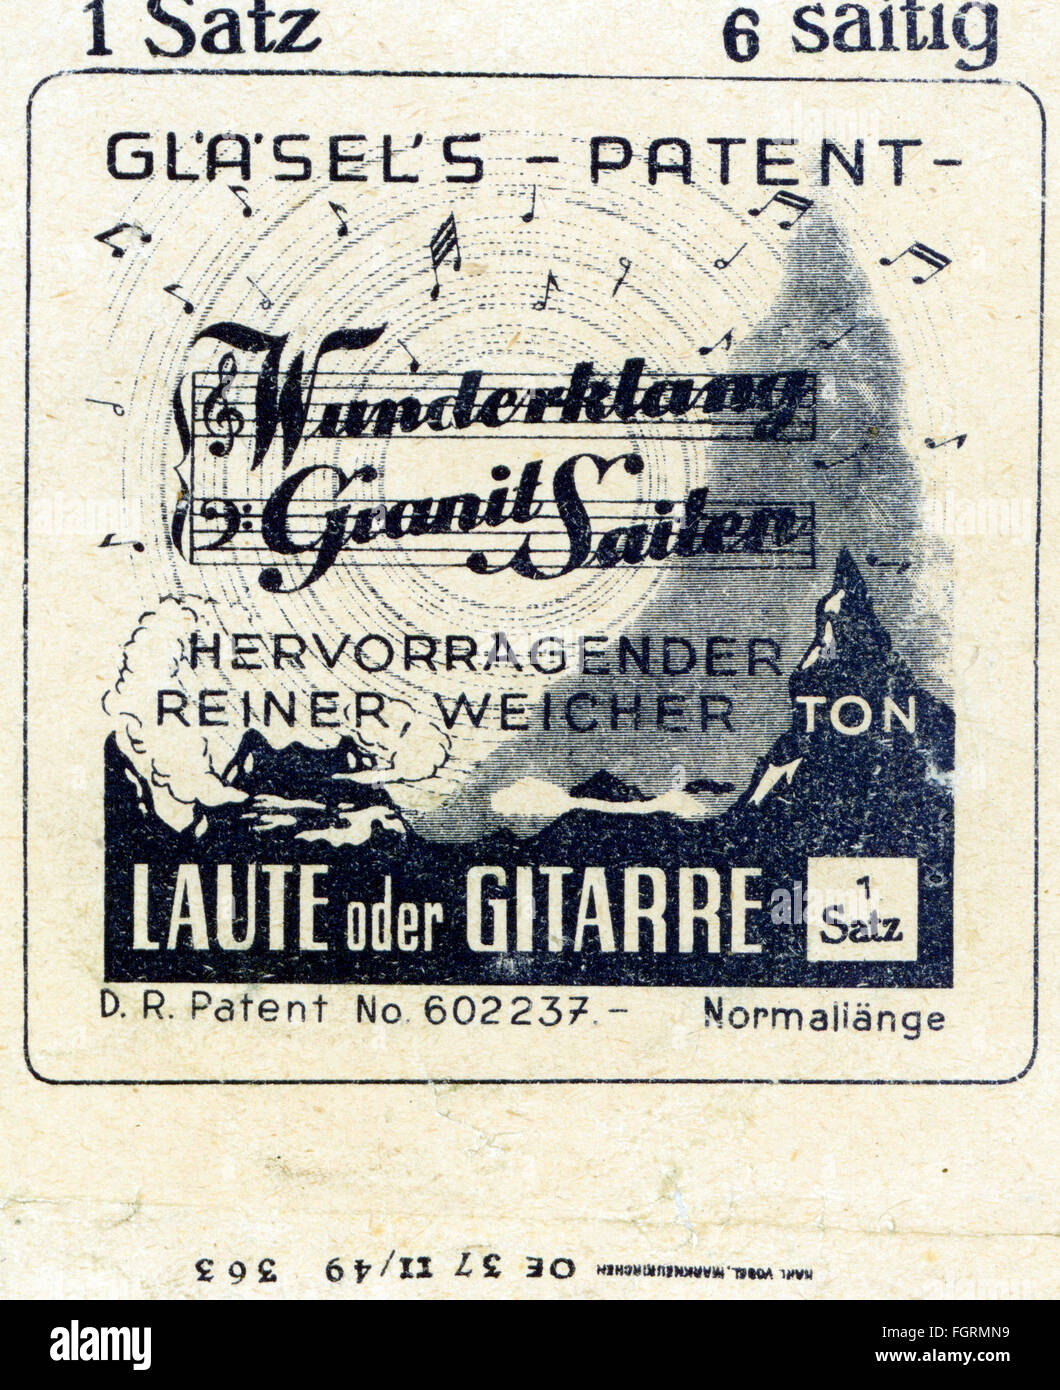 music, instruments, accessories kits, strings for lutes and guitars, Glaesel's Patent Wunderklang Granit Saiten, - Stock Image